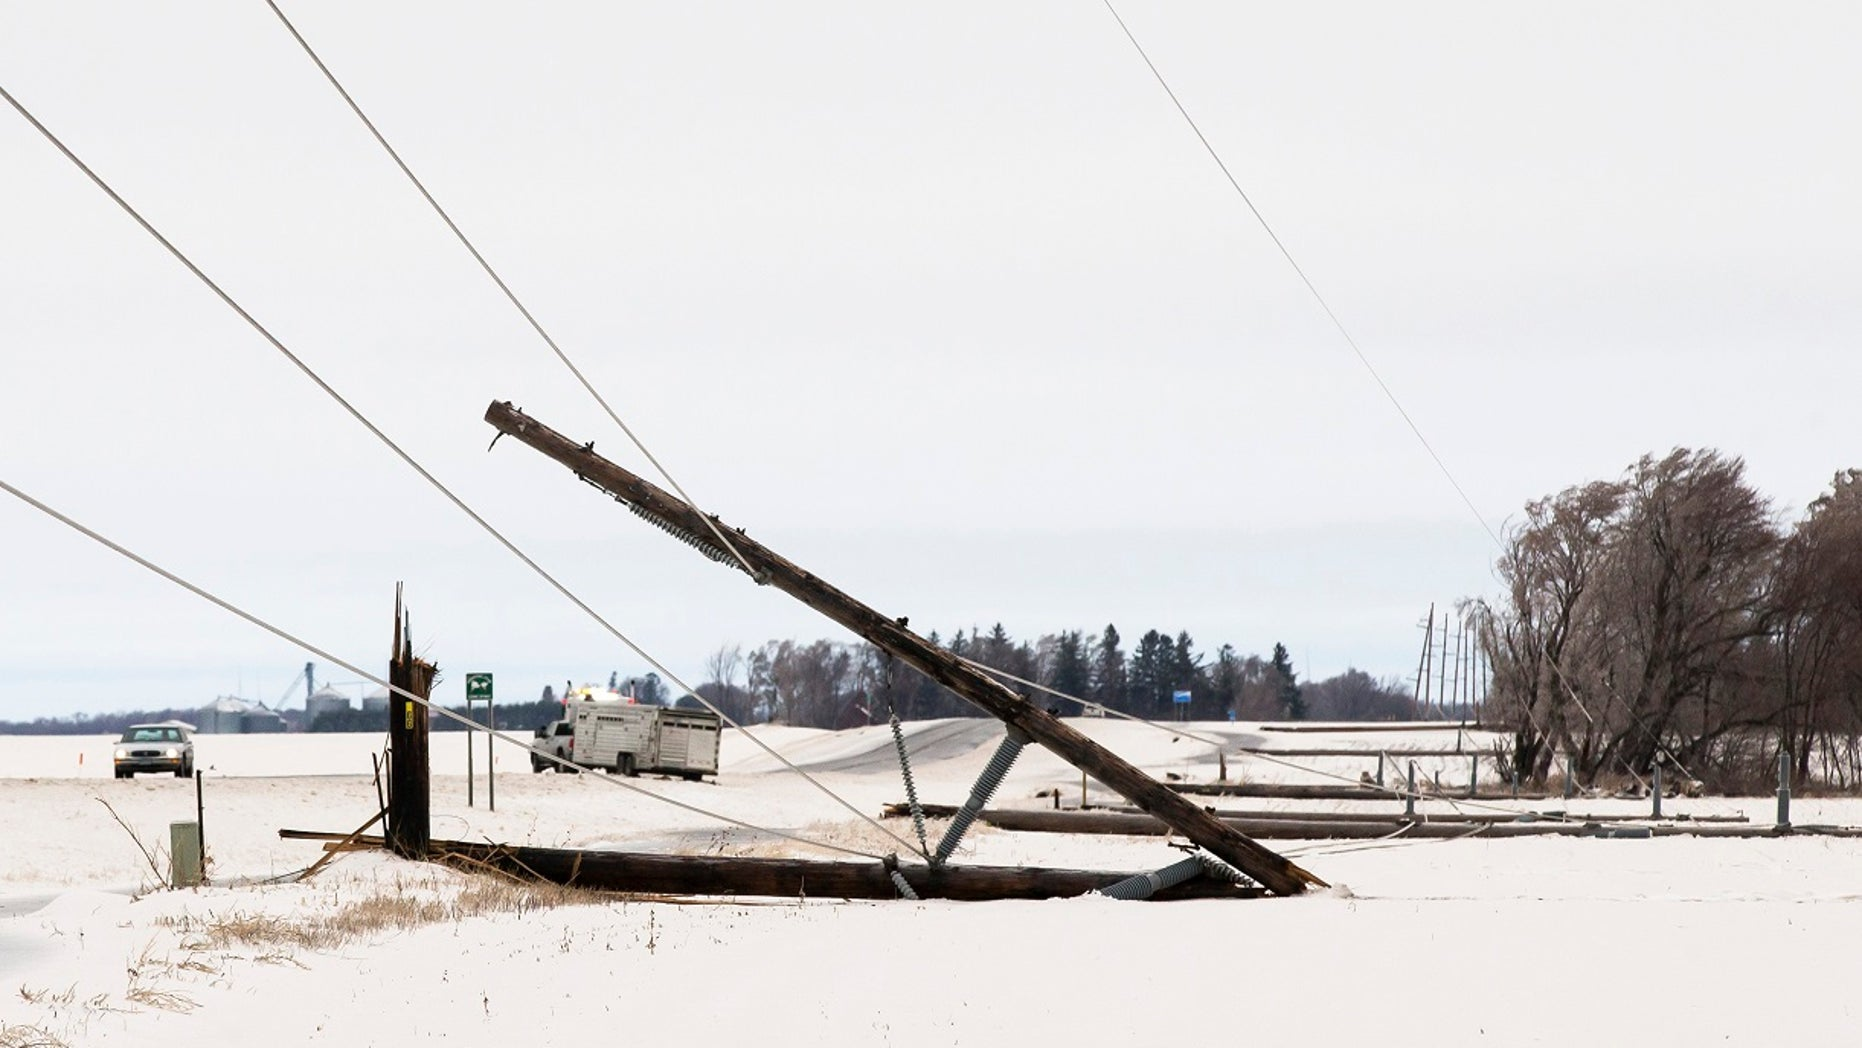 A row of power line poles are snapped from ice and wind along Hwy. 56 south of Interstate 90 on Thursday, April 11, 2019, near Browndale, Minn. A powerful spring snow storm is creating hazardous travel conditions in parts of the Midwest and Great Lakes regions. (Andrew Link/The Rochester Post-Bulletin via AP)